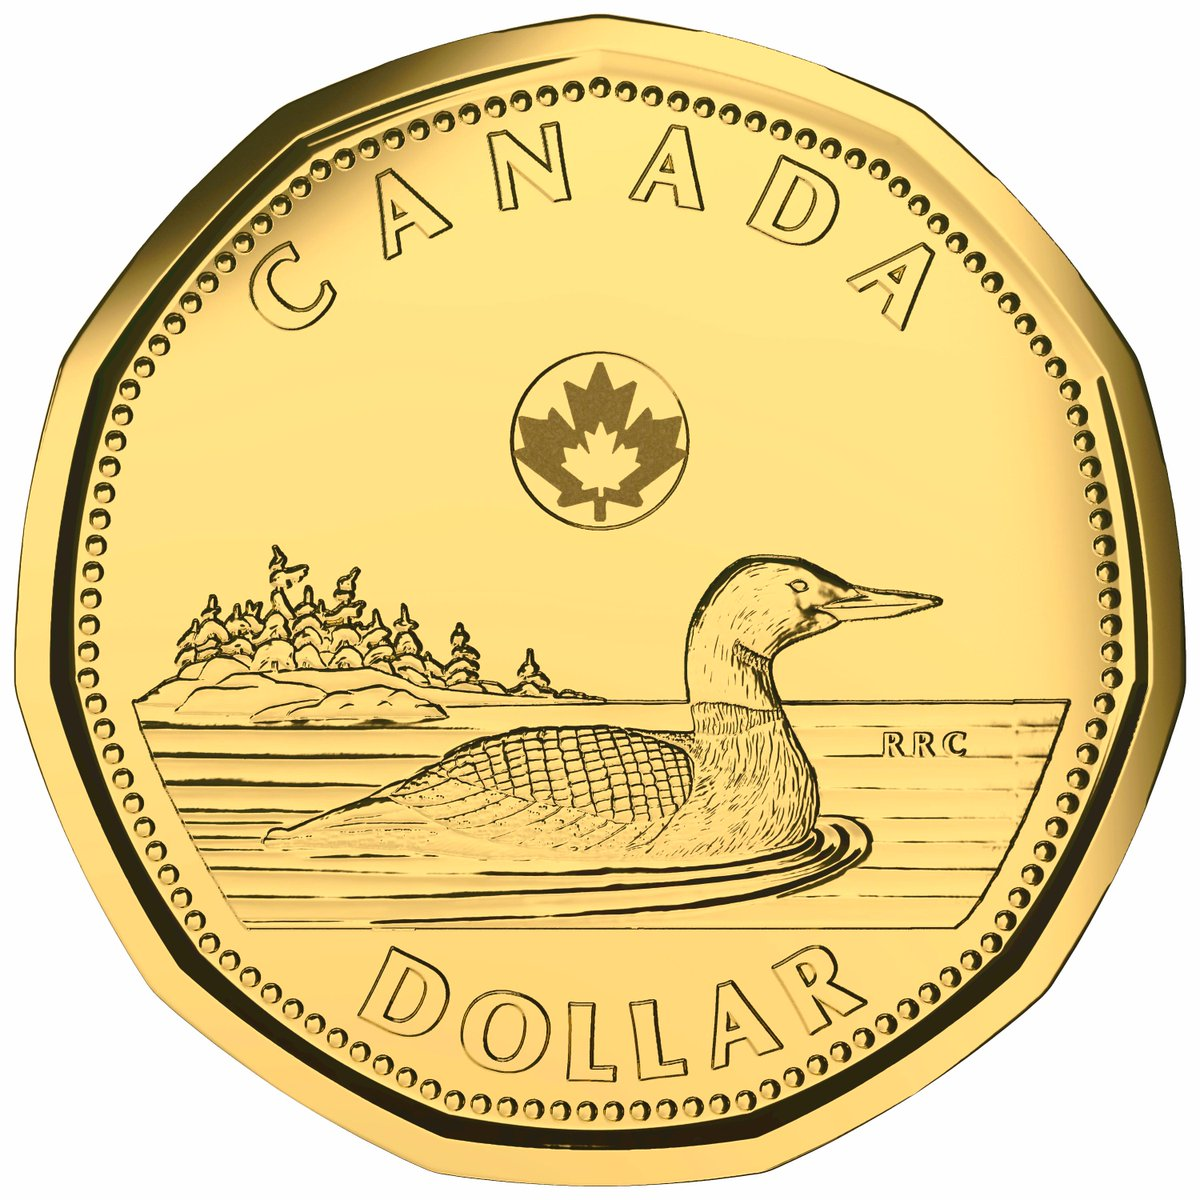 Royal Canadian Mint on Twitter: